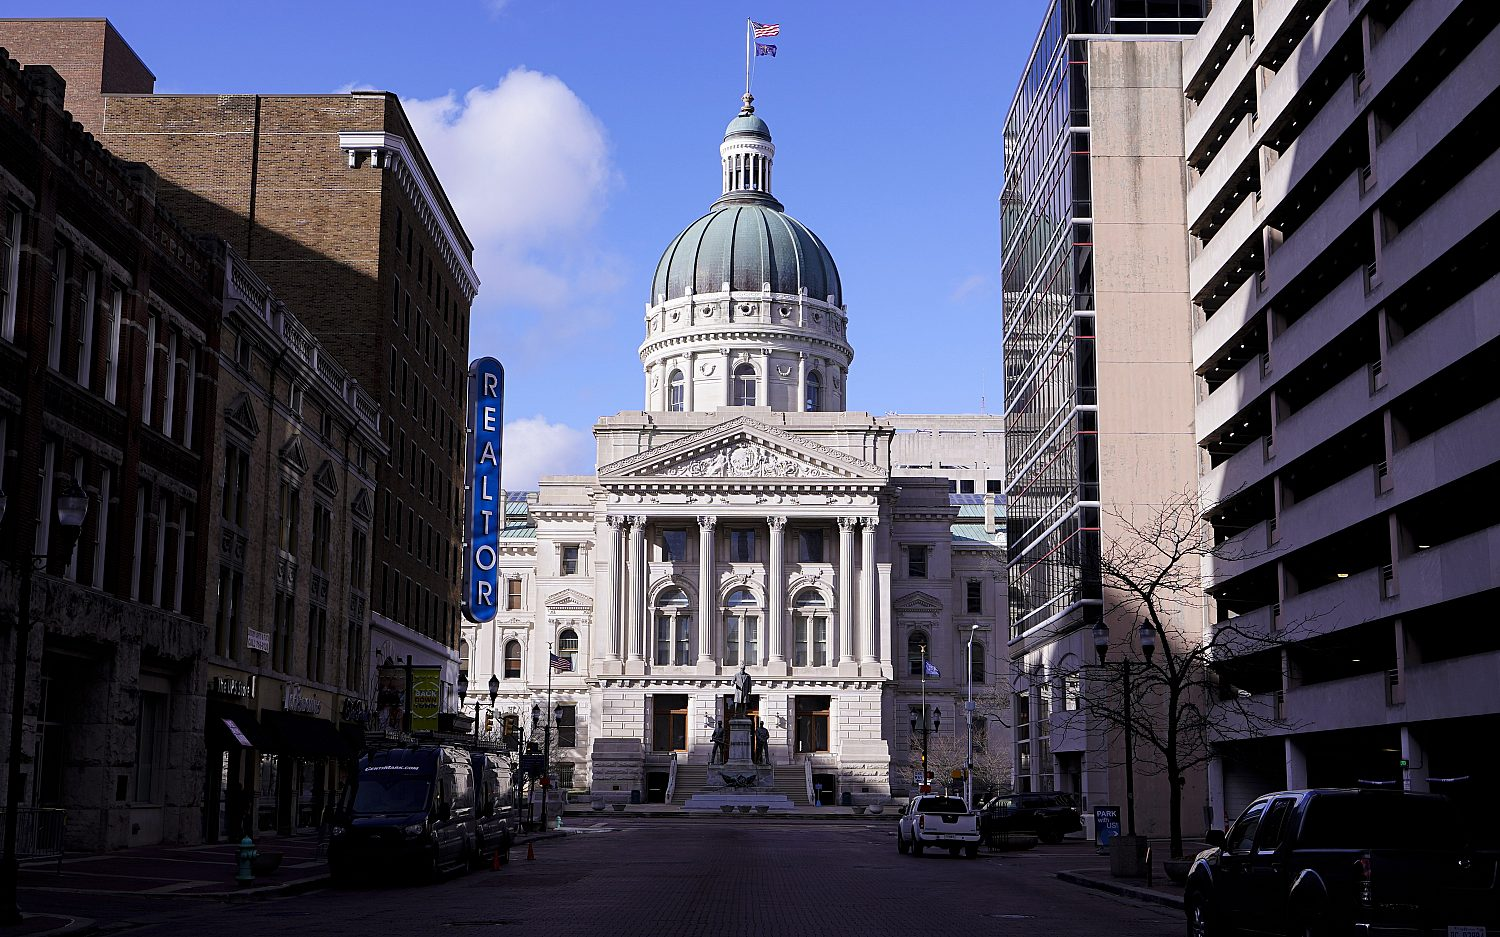 Pro-abortion judicial activism in Indiana